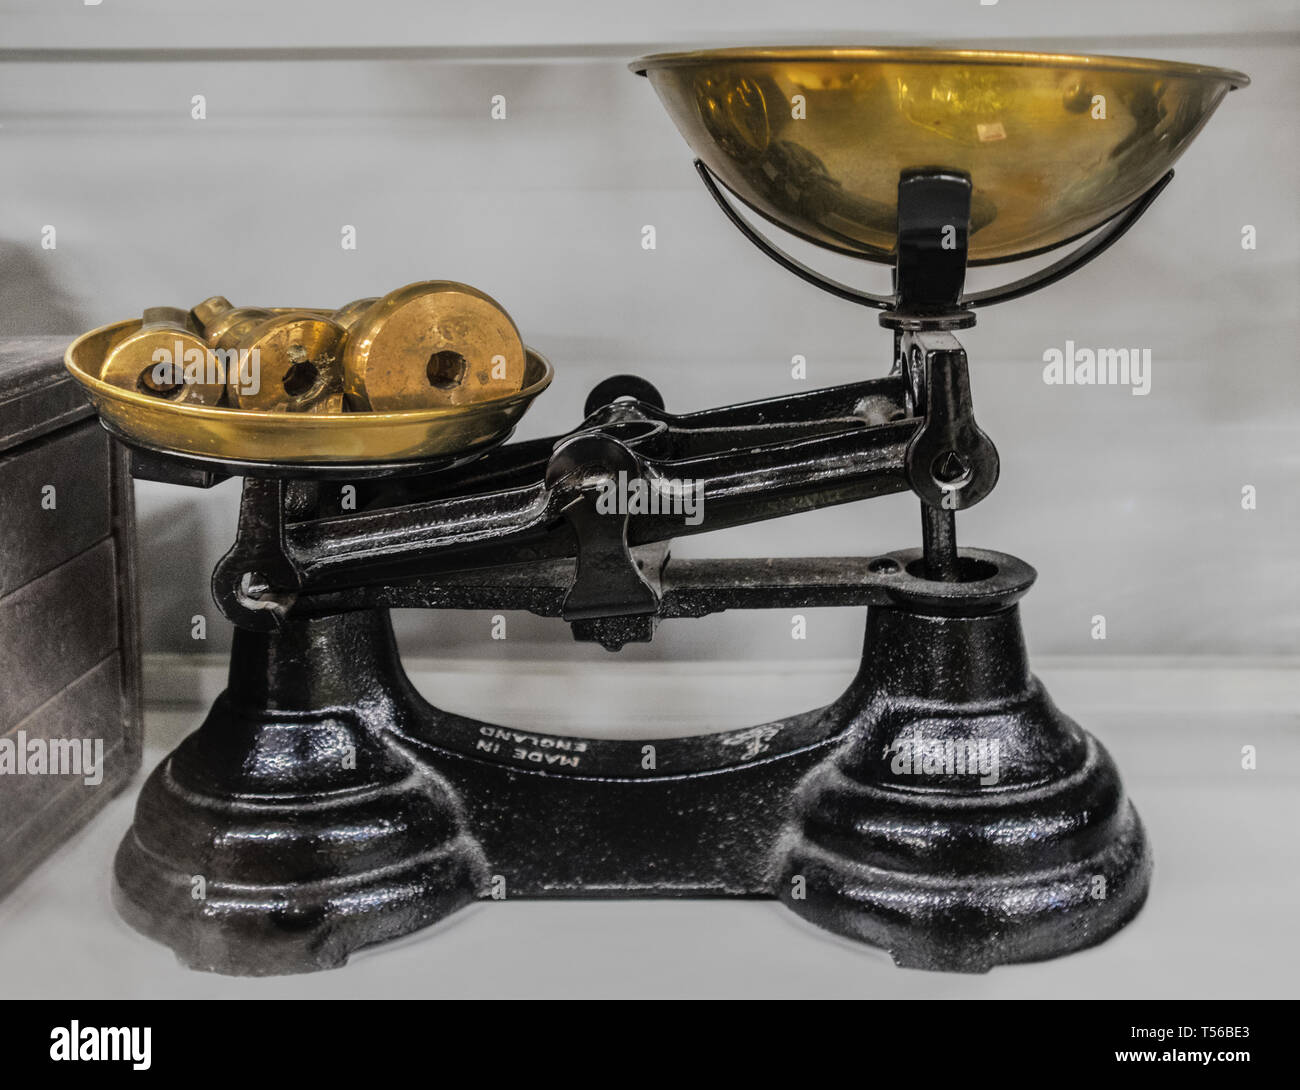 Antique balance scale with brass masses. - Stock Image